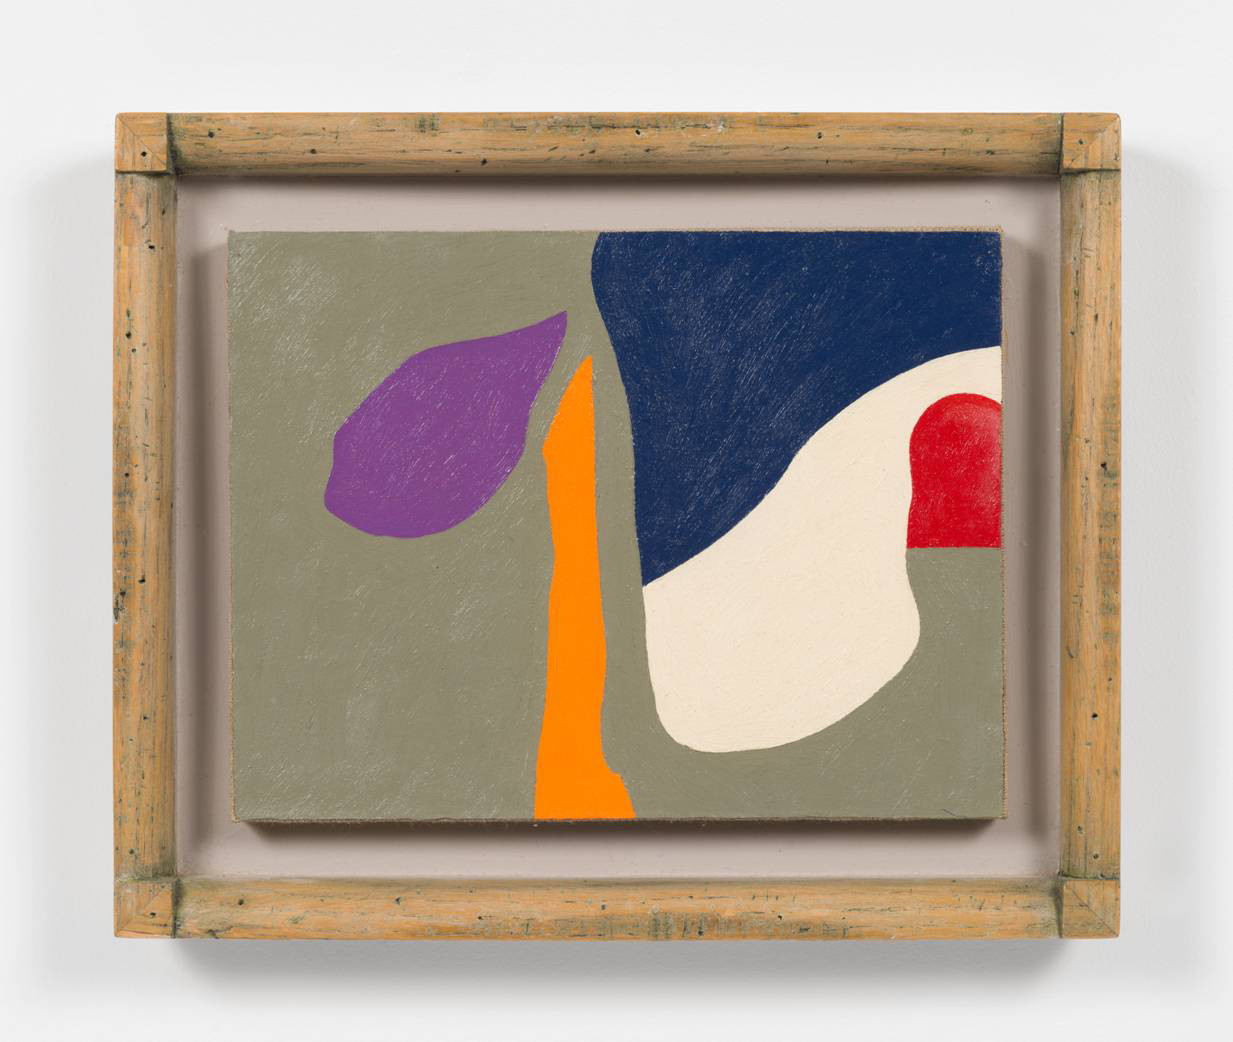 The full image of Frederick Hammersley's